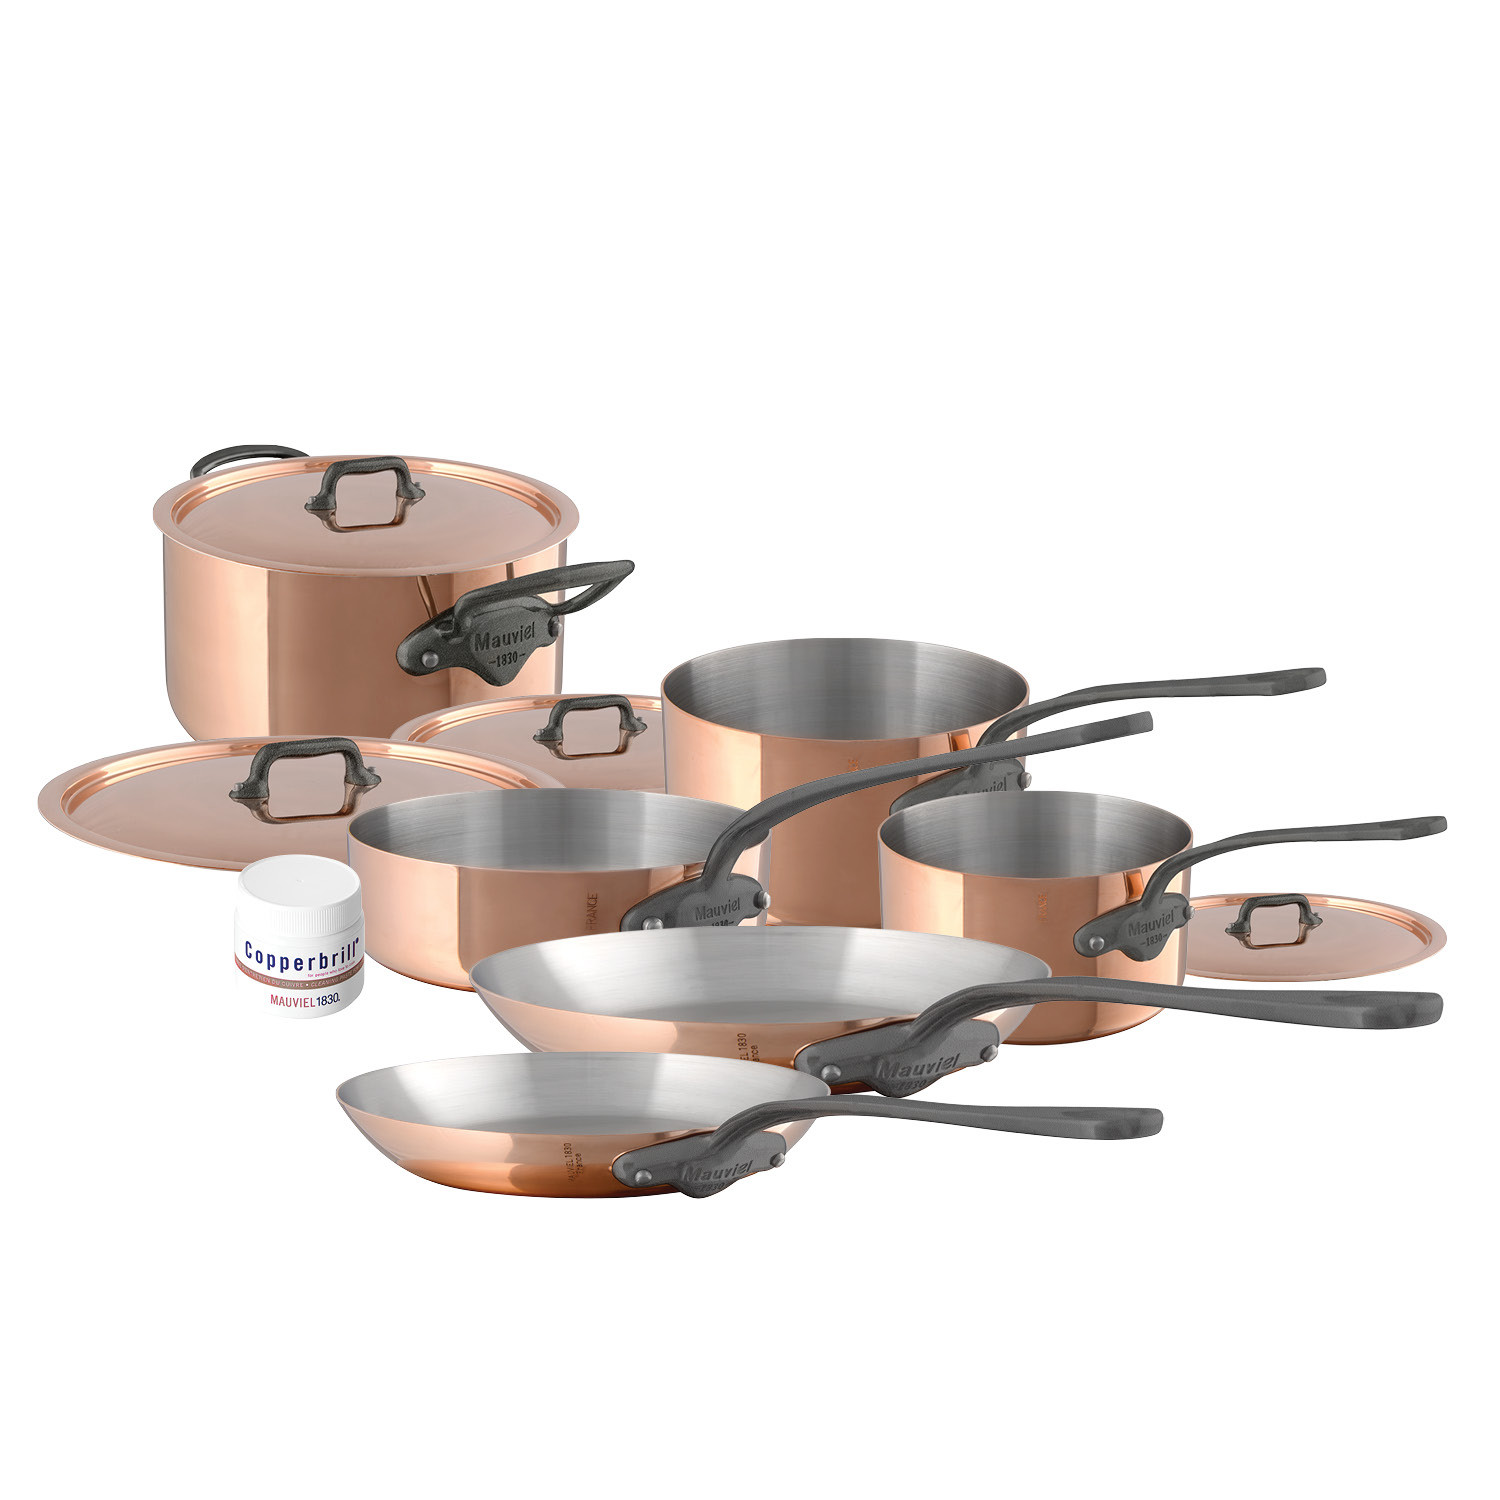 M'150c2 - 10 pc. Copper Set - 1.5mm  S.S. Interior Cast Iron Handles